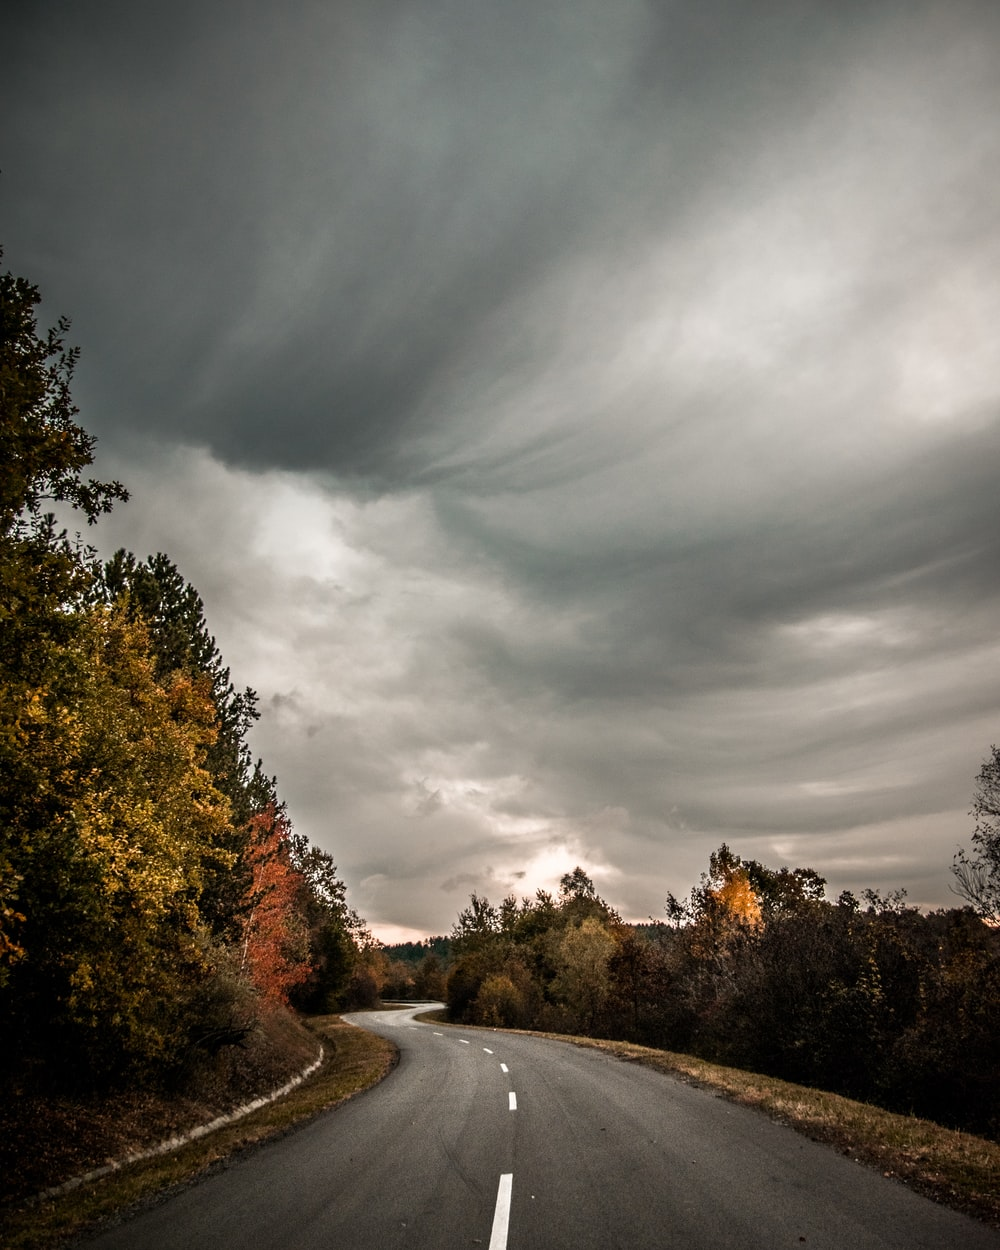 road beside green-leafed trees under gray clouds